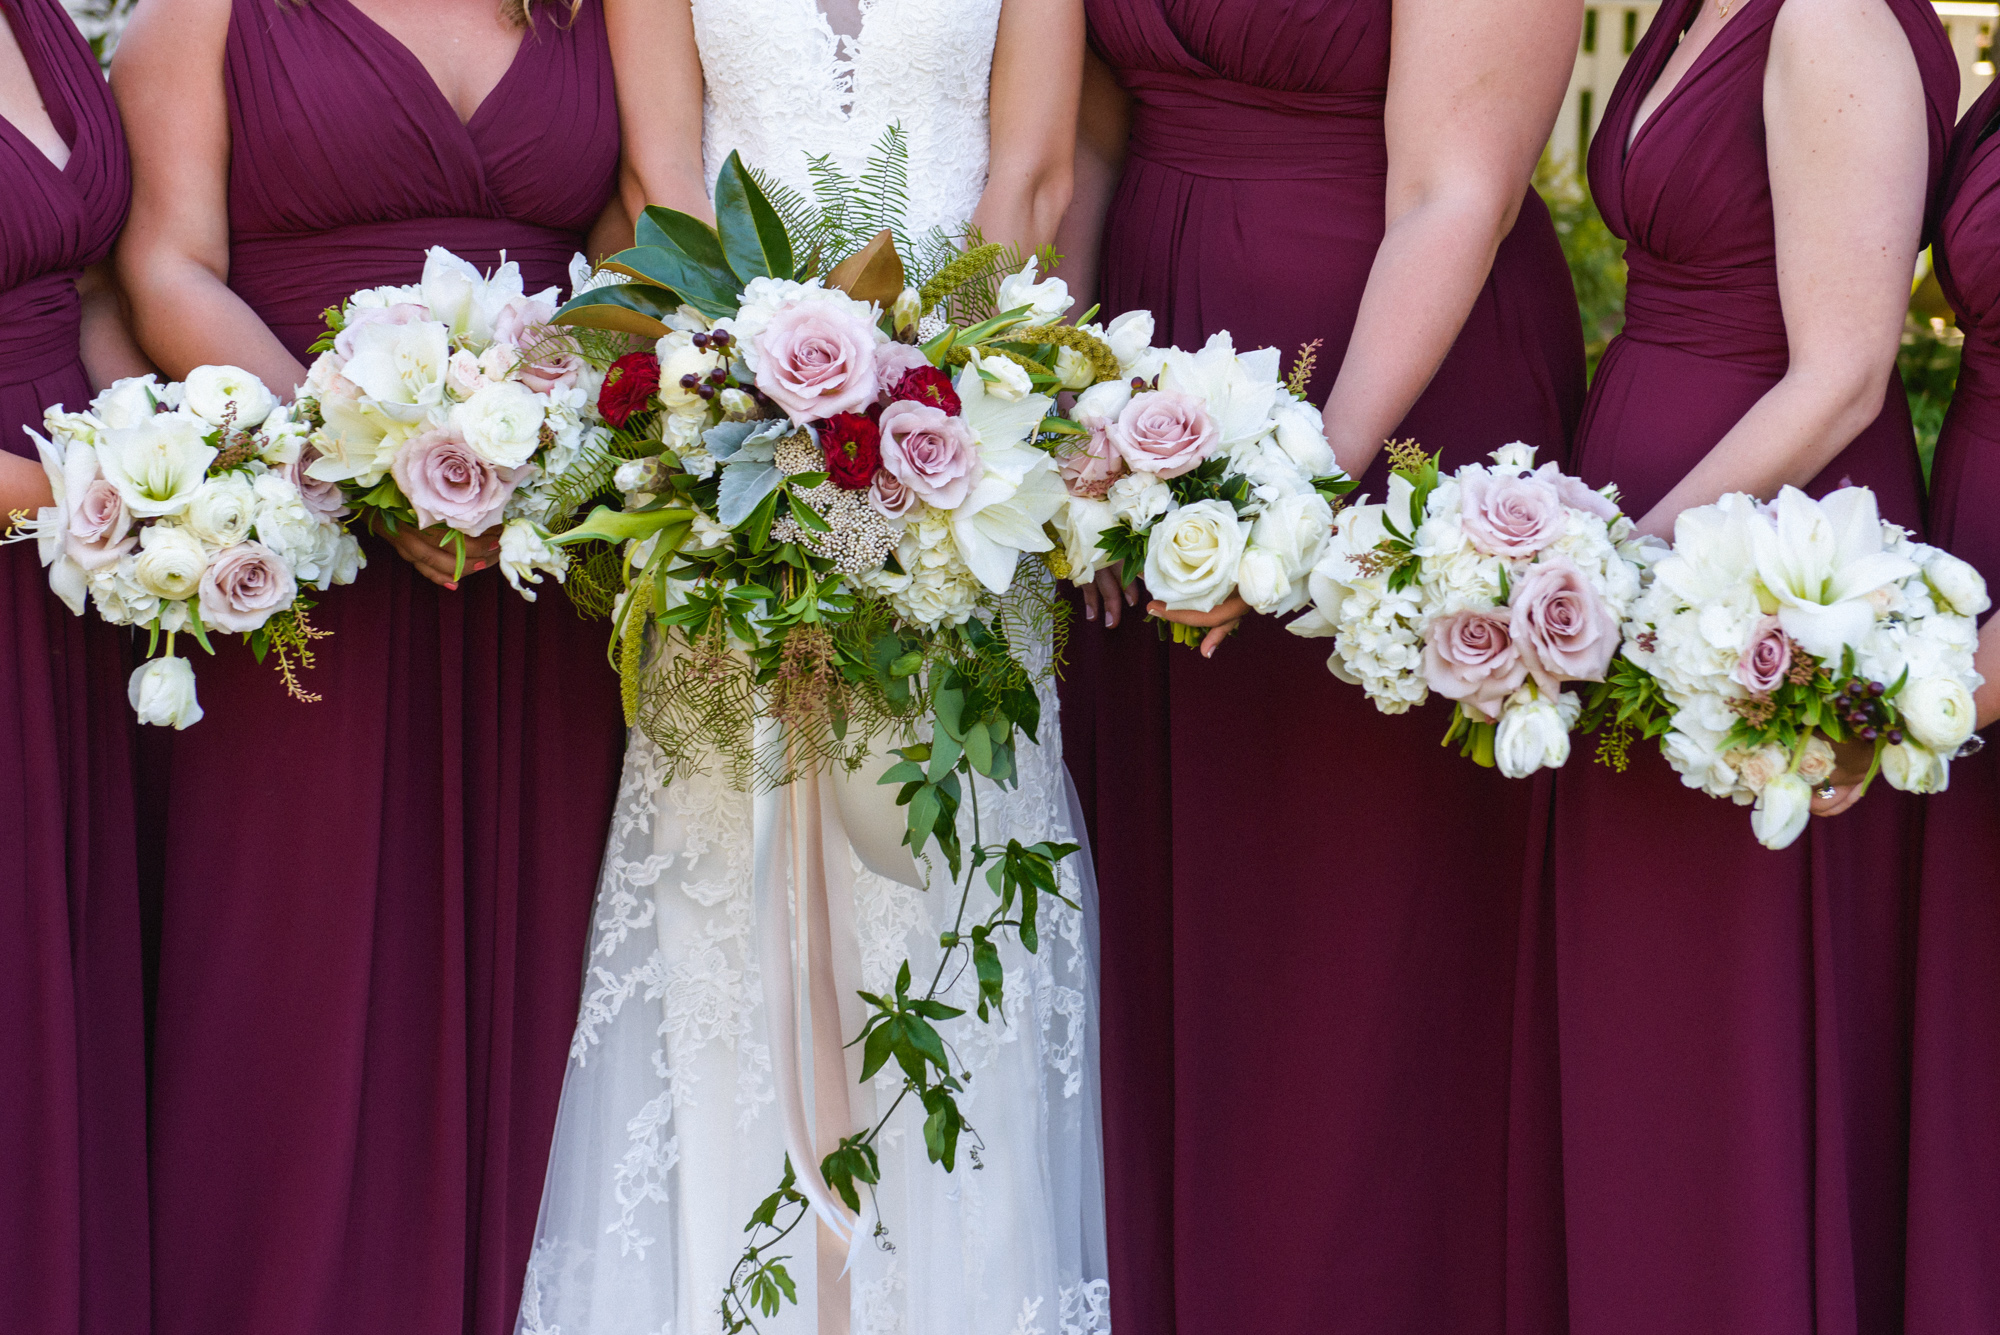 Bridal party bouquets at the Harbor View Hotel  photo by David Welch Photography